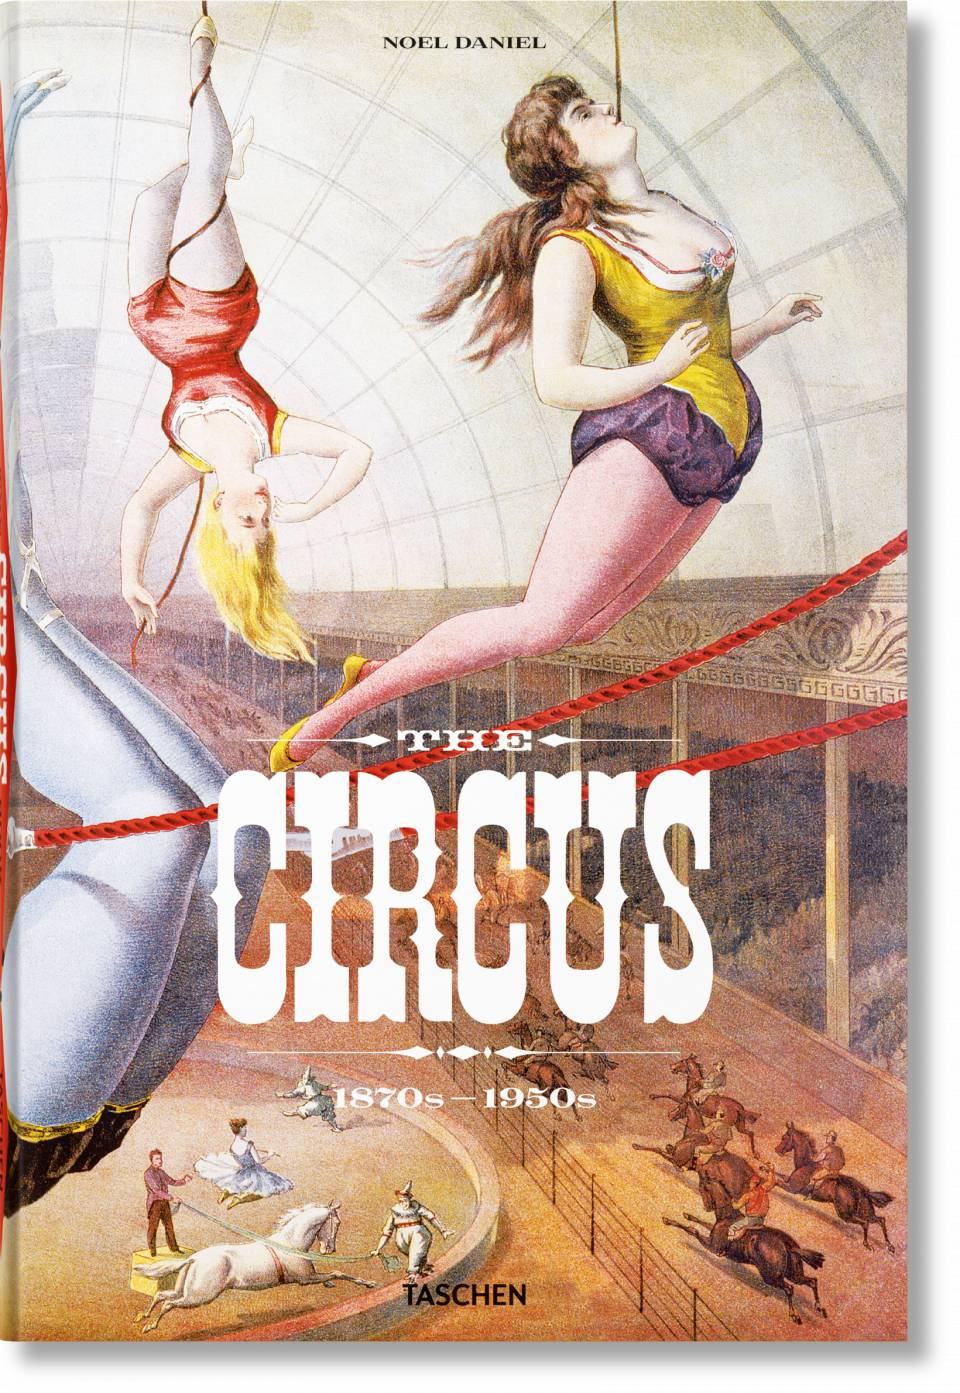 The Circus. 1870s–1950s - image 1